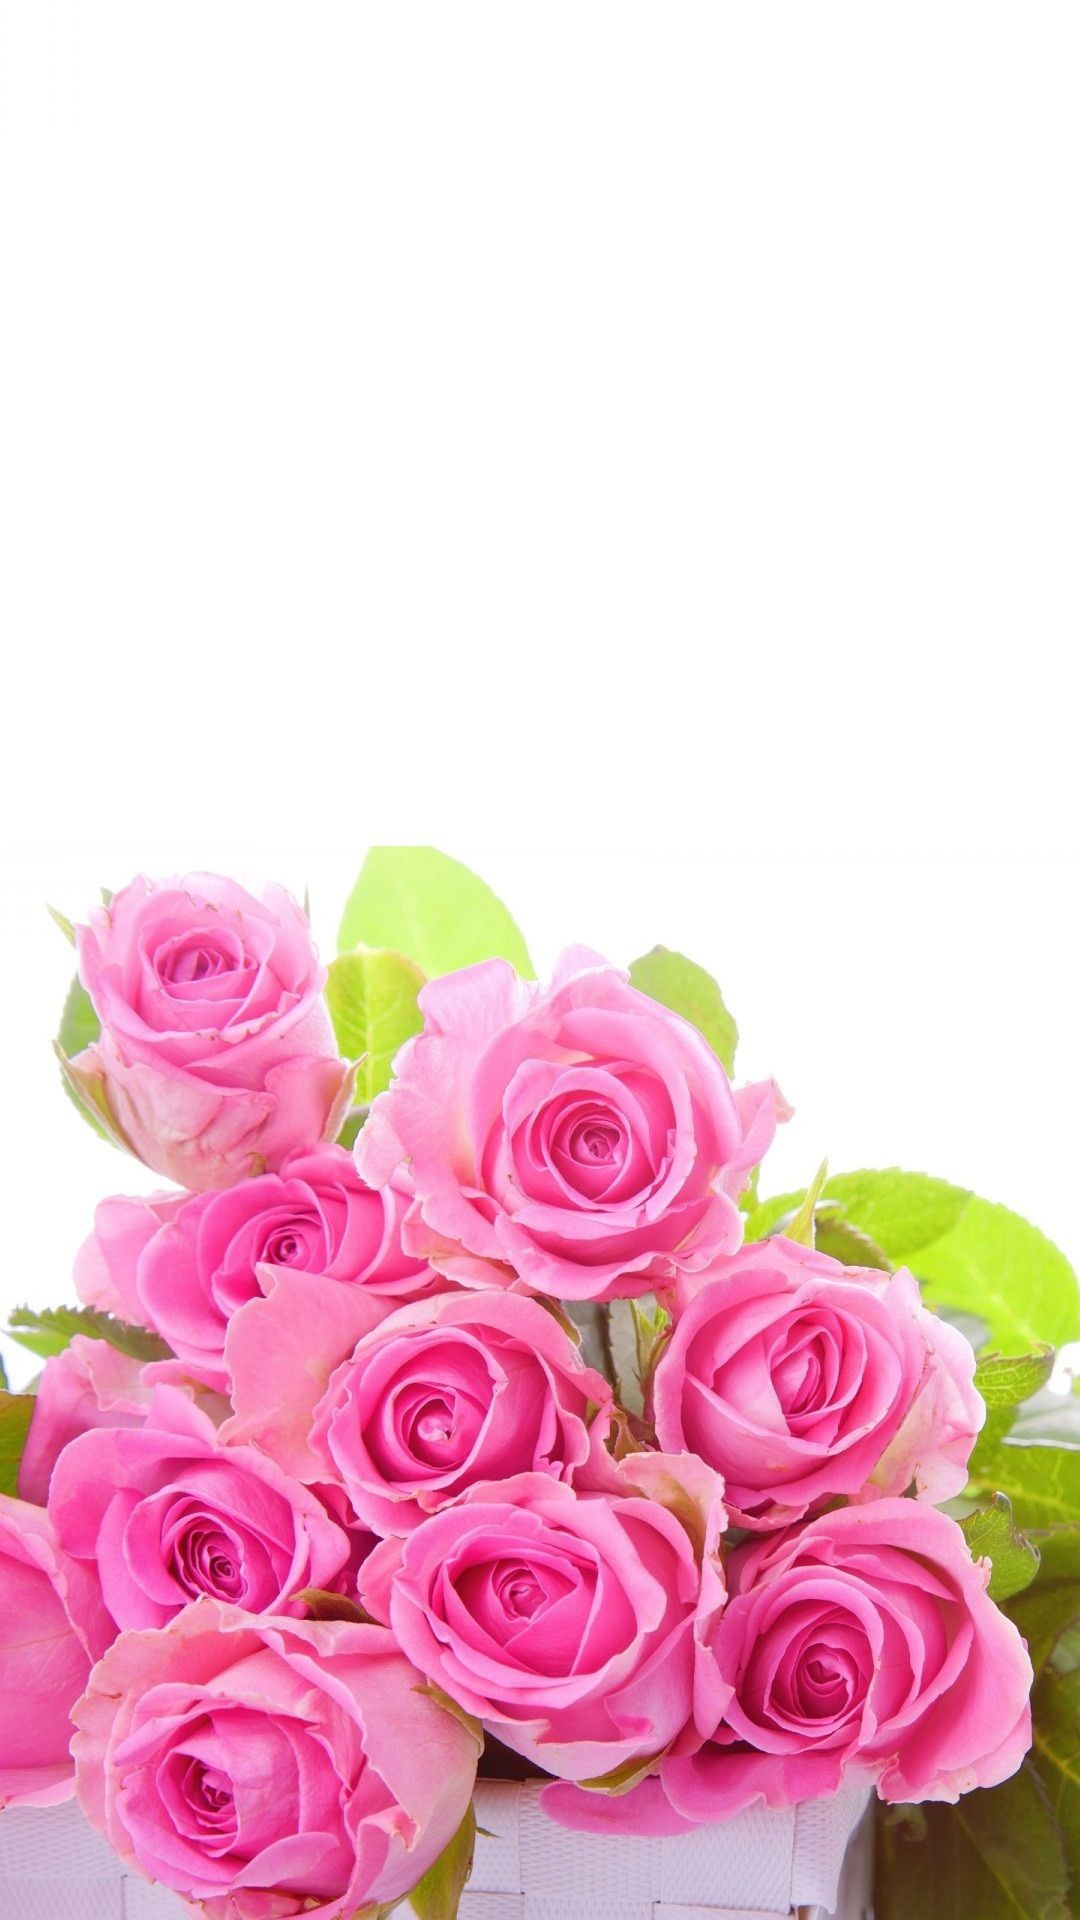 Res: 1080x1920, Pink roses Flower Wallpaper For iPhone - Best iPhone Wallpaper